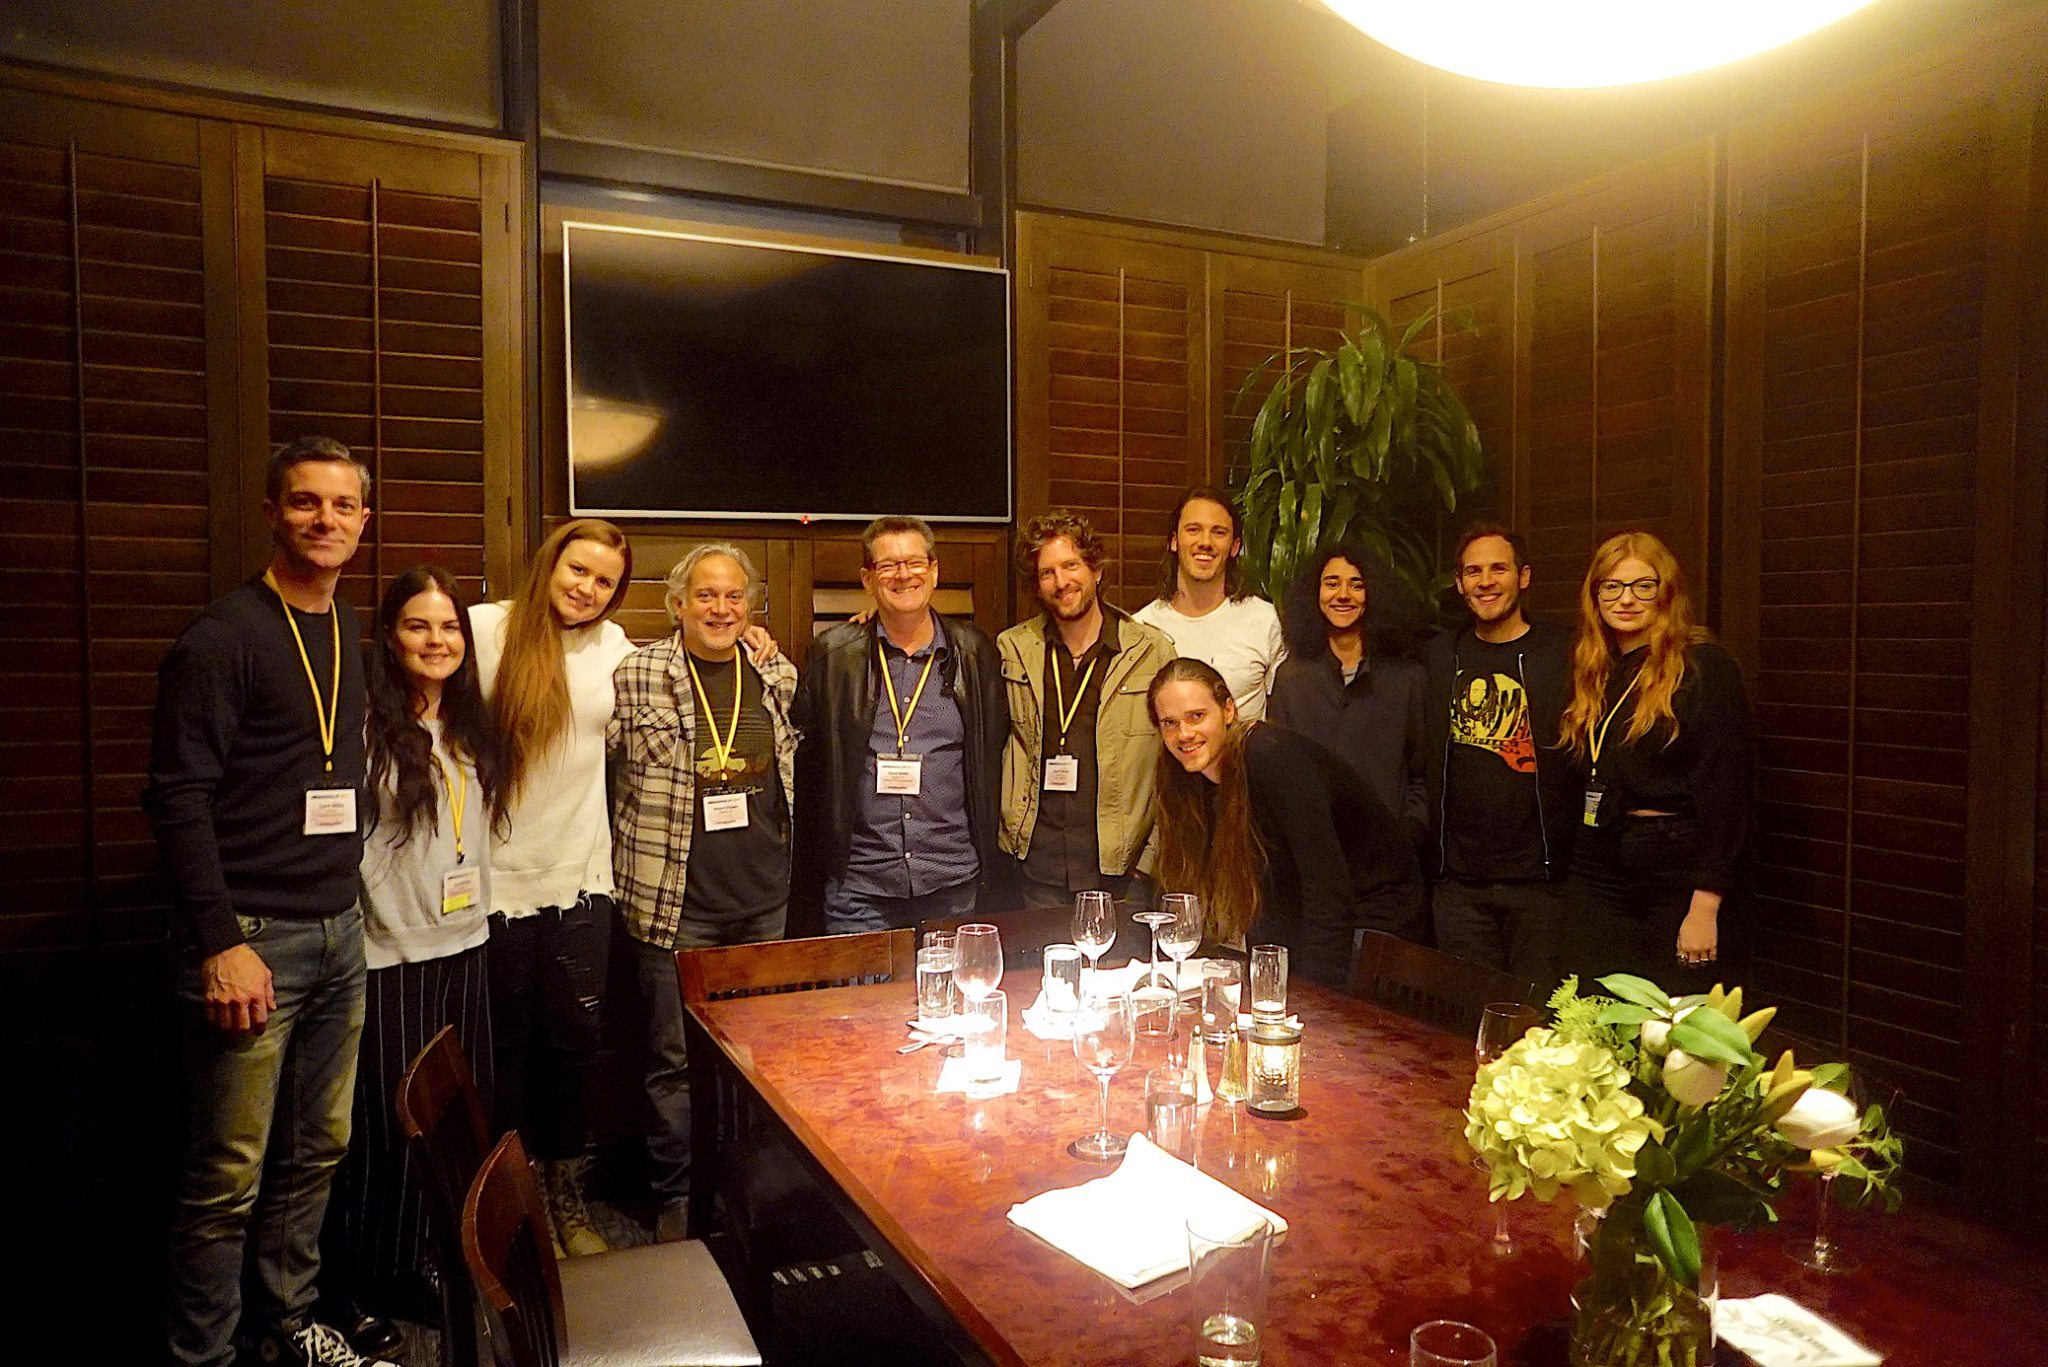 During the TAXI Music Conference, our tour leader extraordinaire Garry Smith outdid himself by organising a private dinner with some heavy hitters in the American Music Industry. Lots of laughs, good food and plenty of incredible advice and information. It was also great to catch up with BPM alumni Jessie Jess!